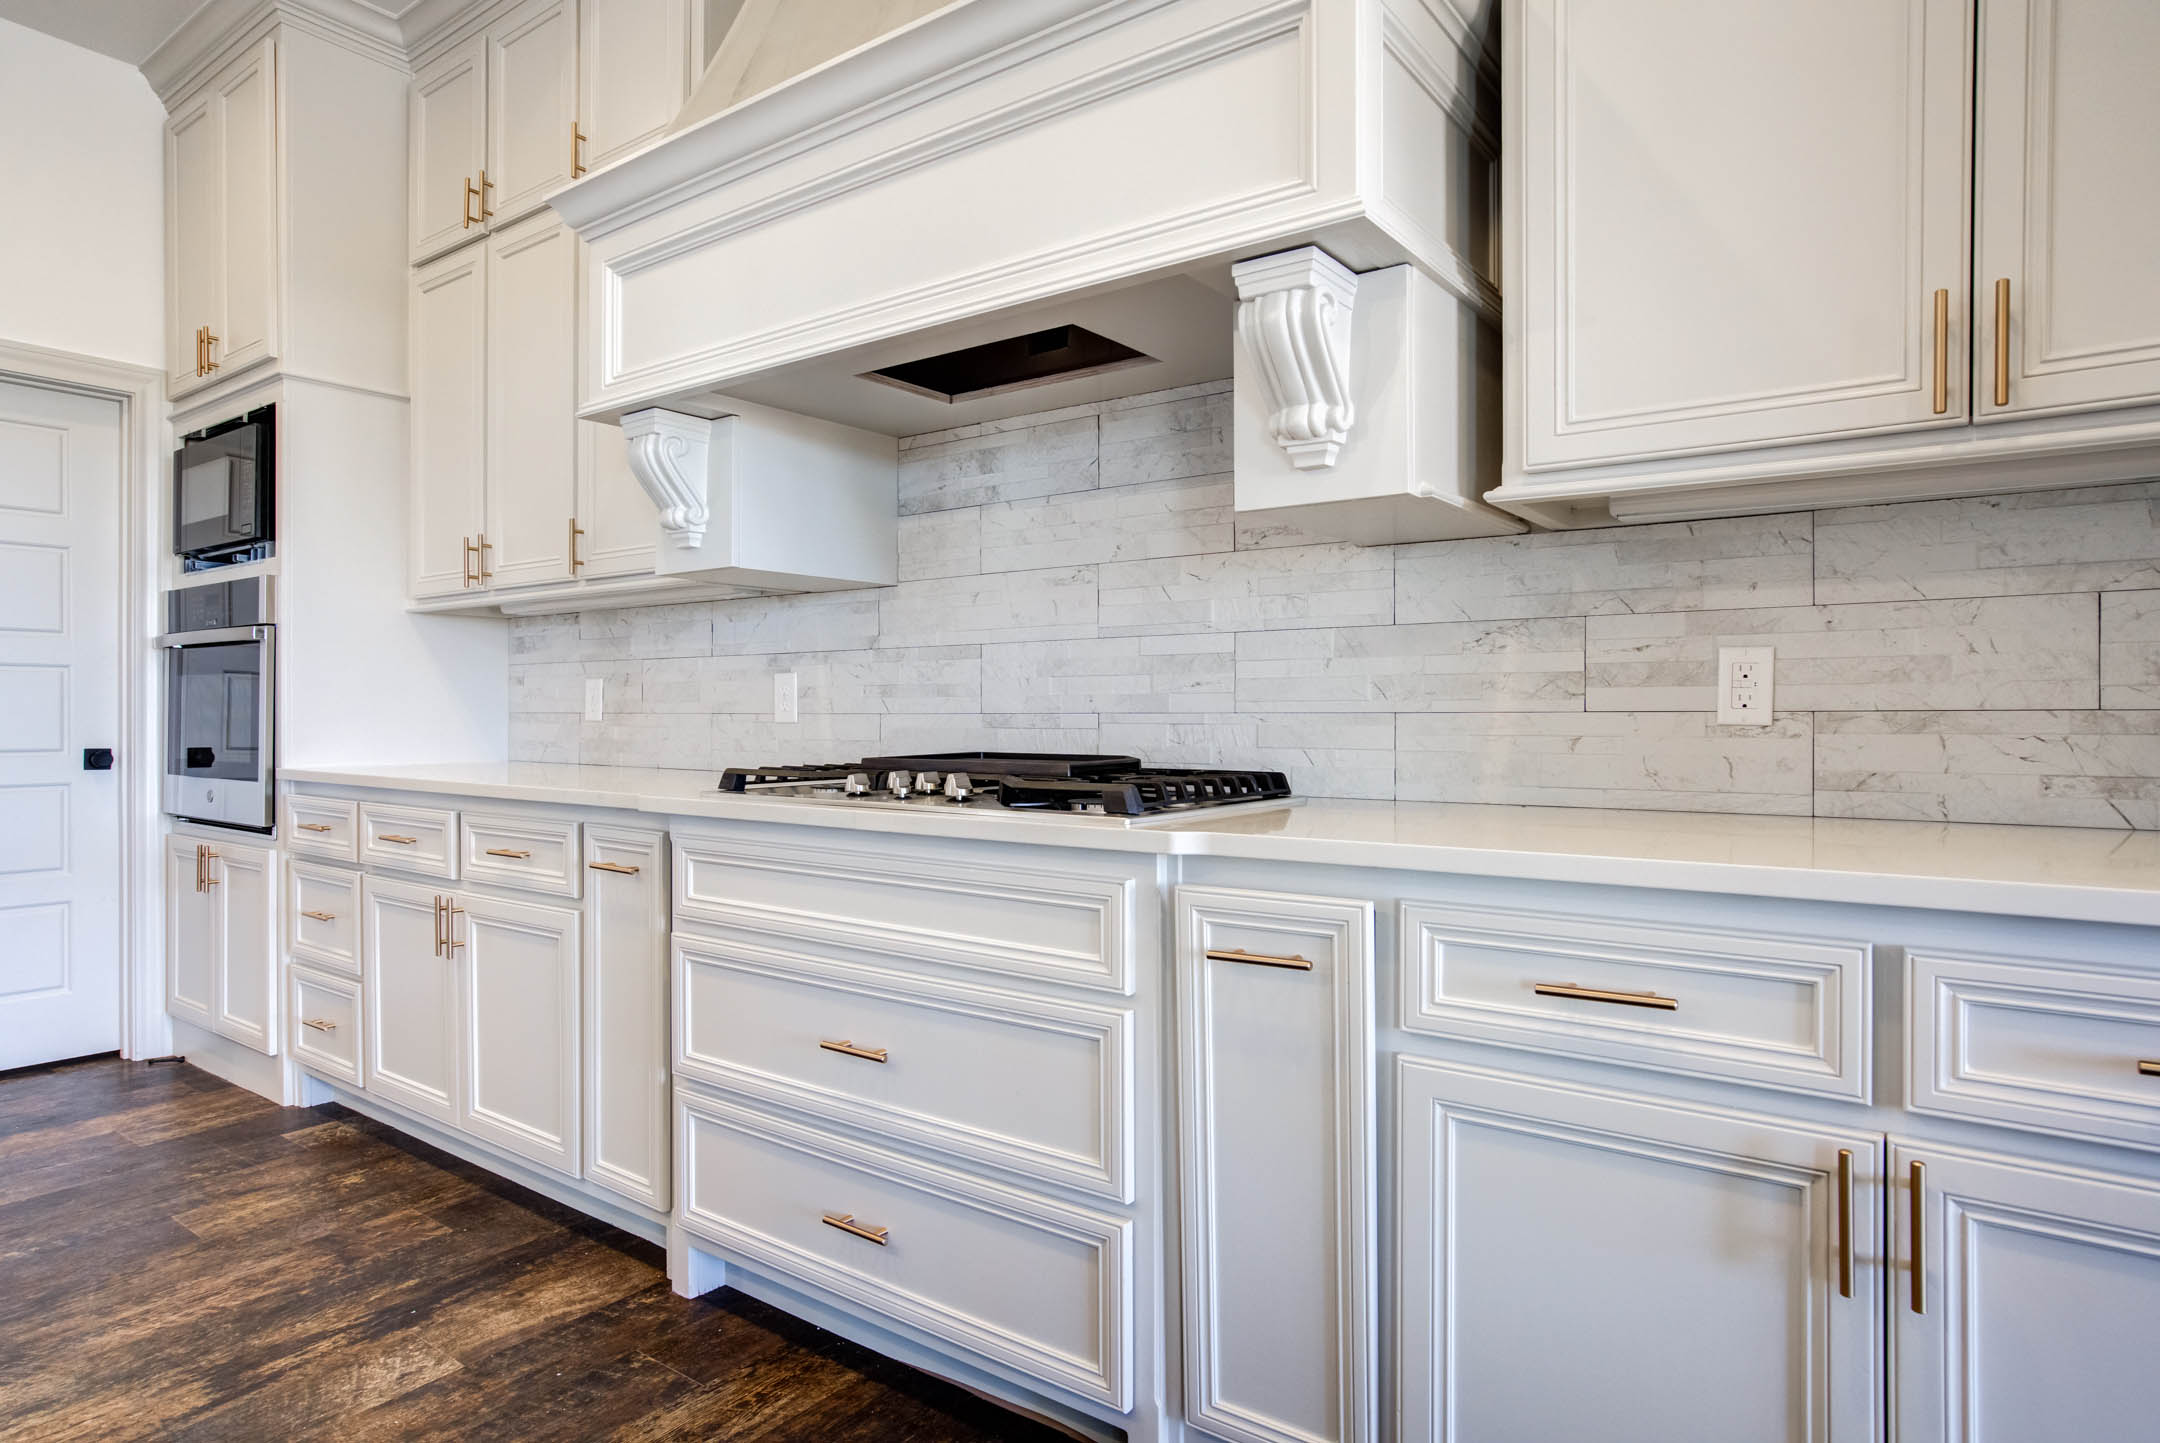 Stove area with beautiful tile treatment in kitchen of home for sale near Lubbock.